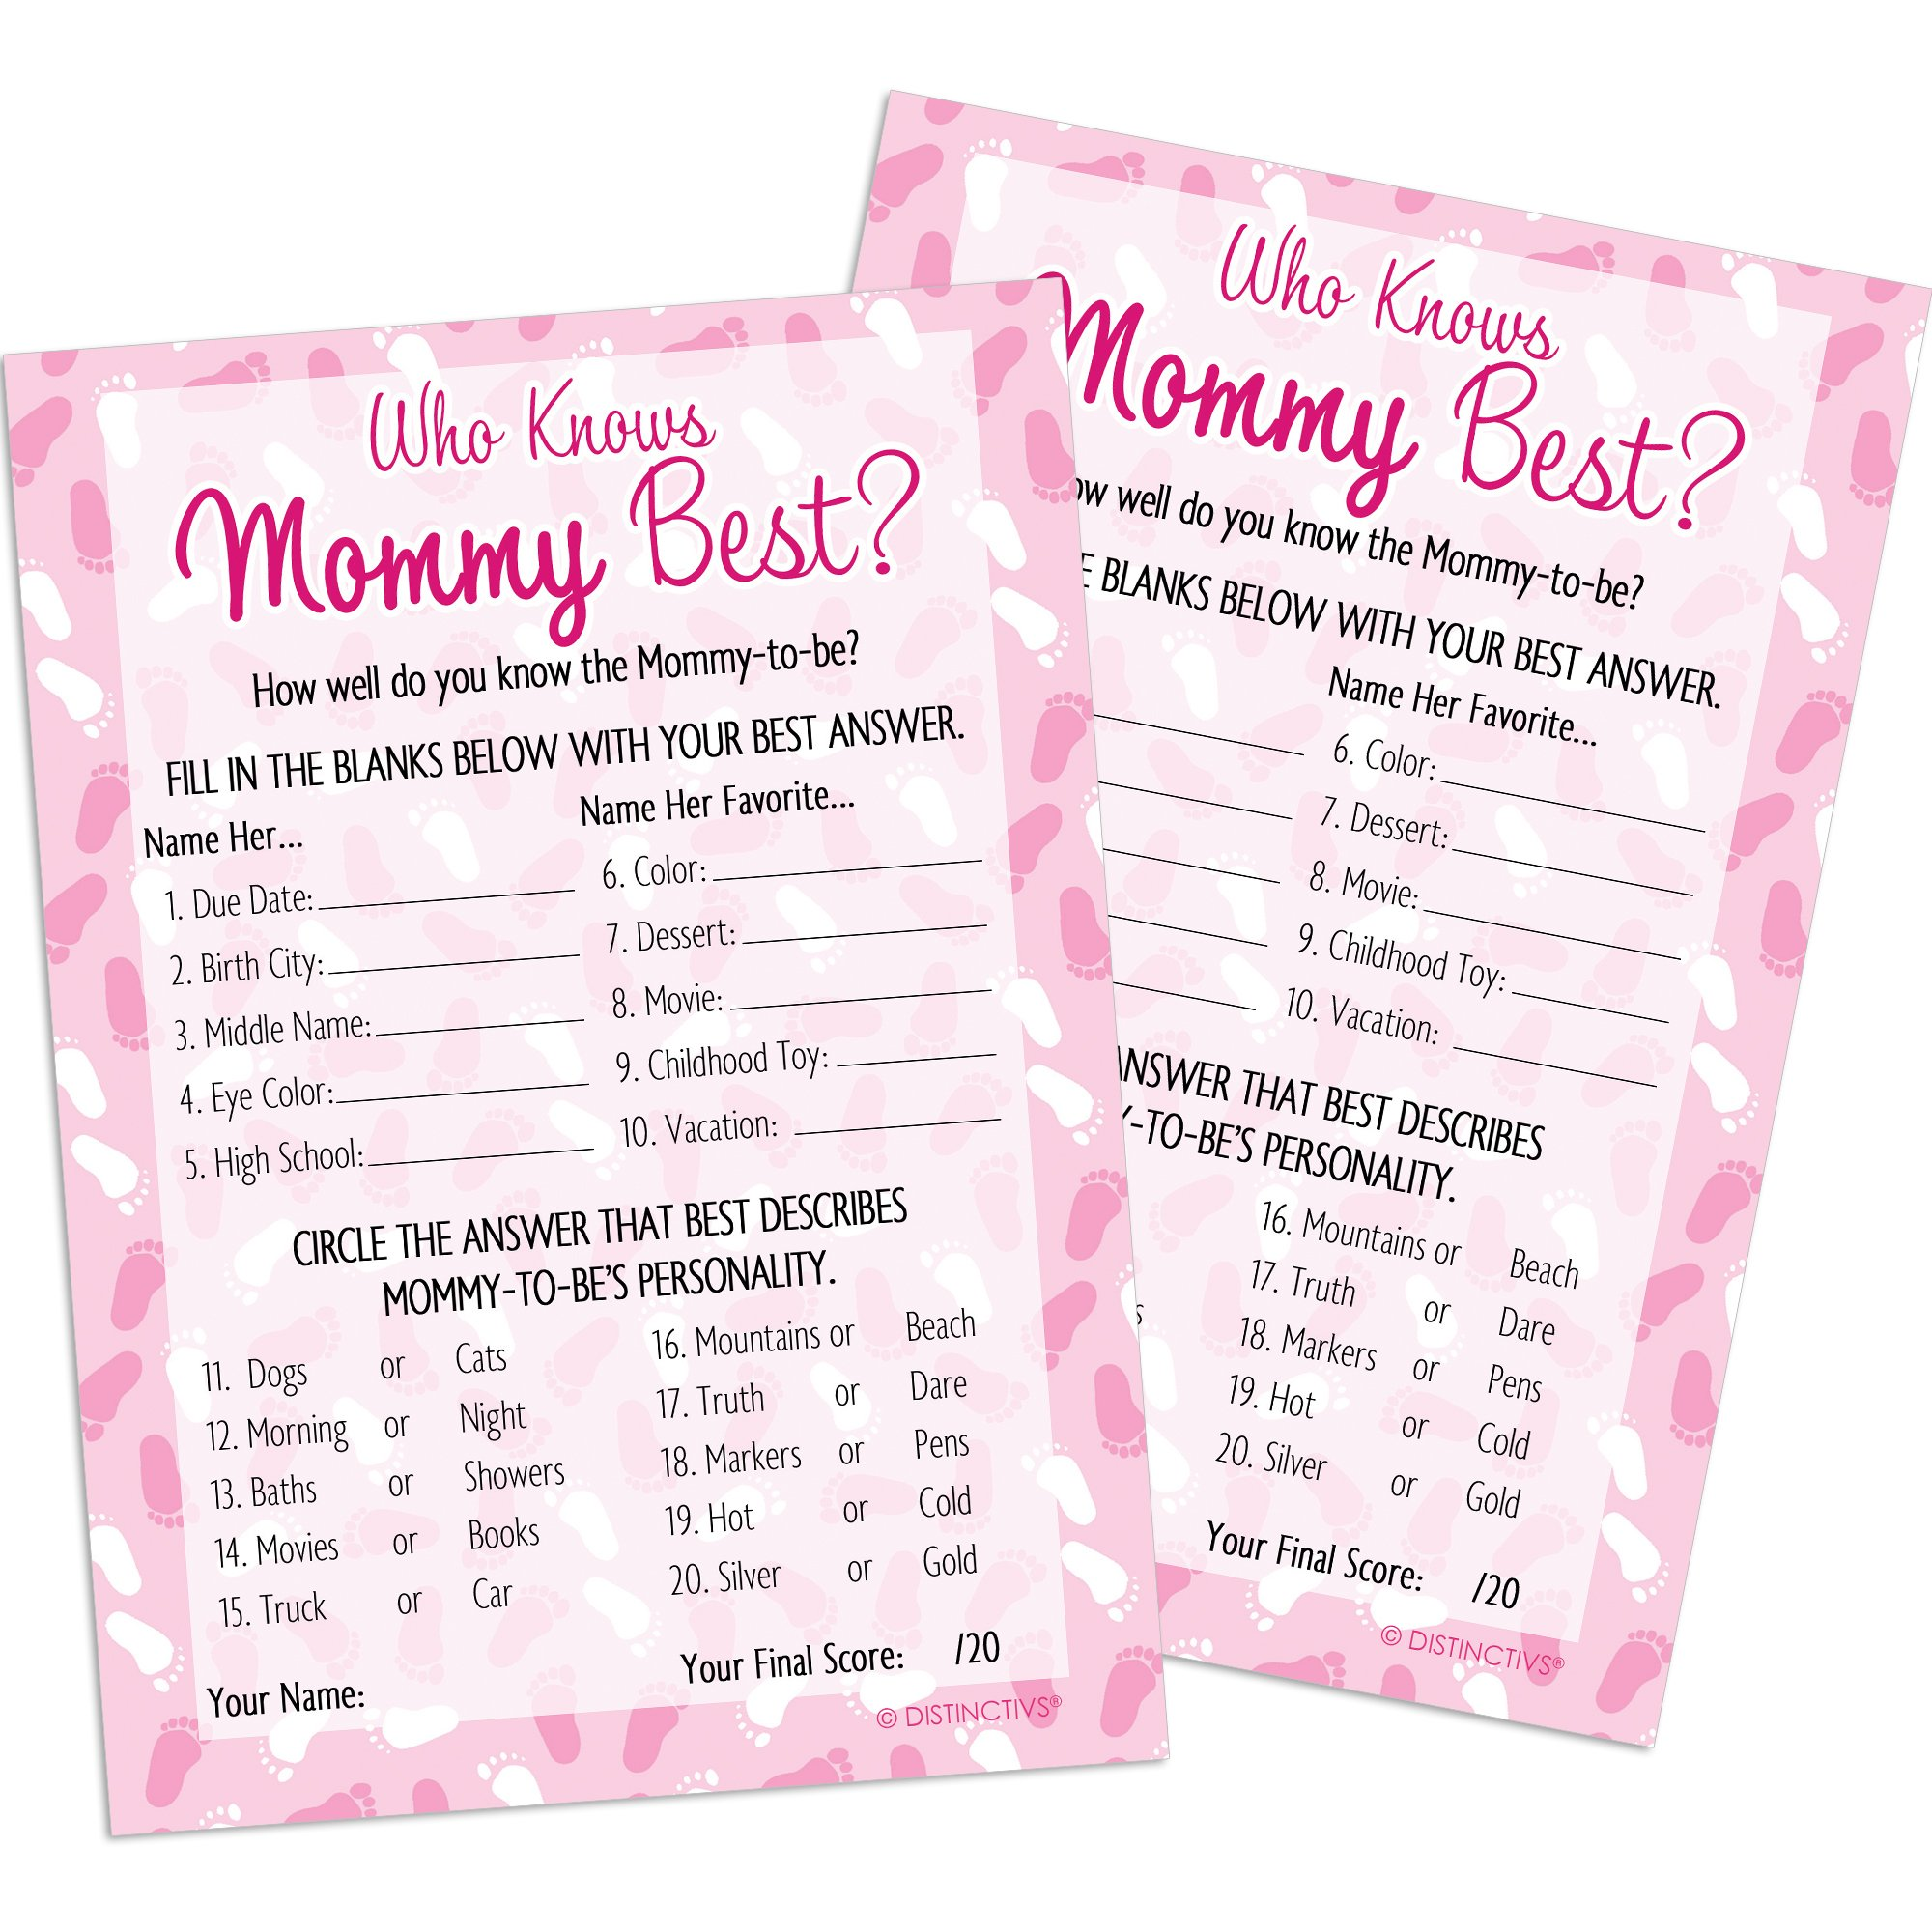 DISTINCTIVS Who Knows Mommy Best - Pink Girl Baby Shower Game Cards (20 Count)